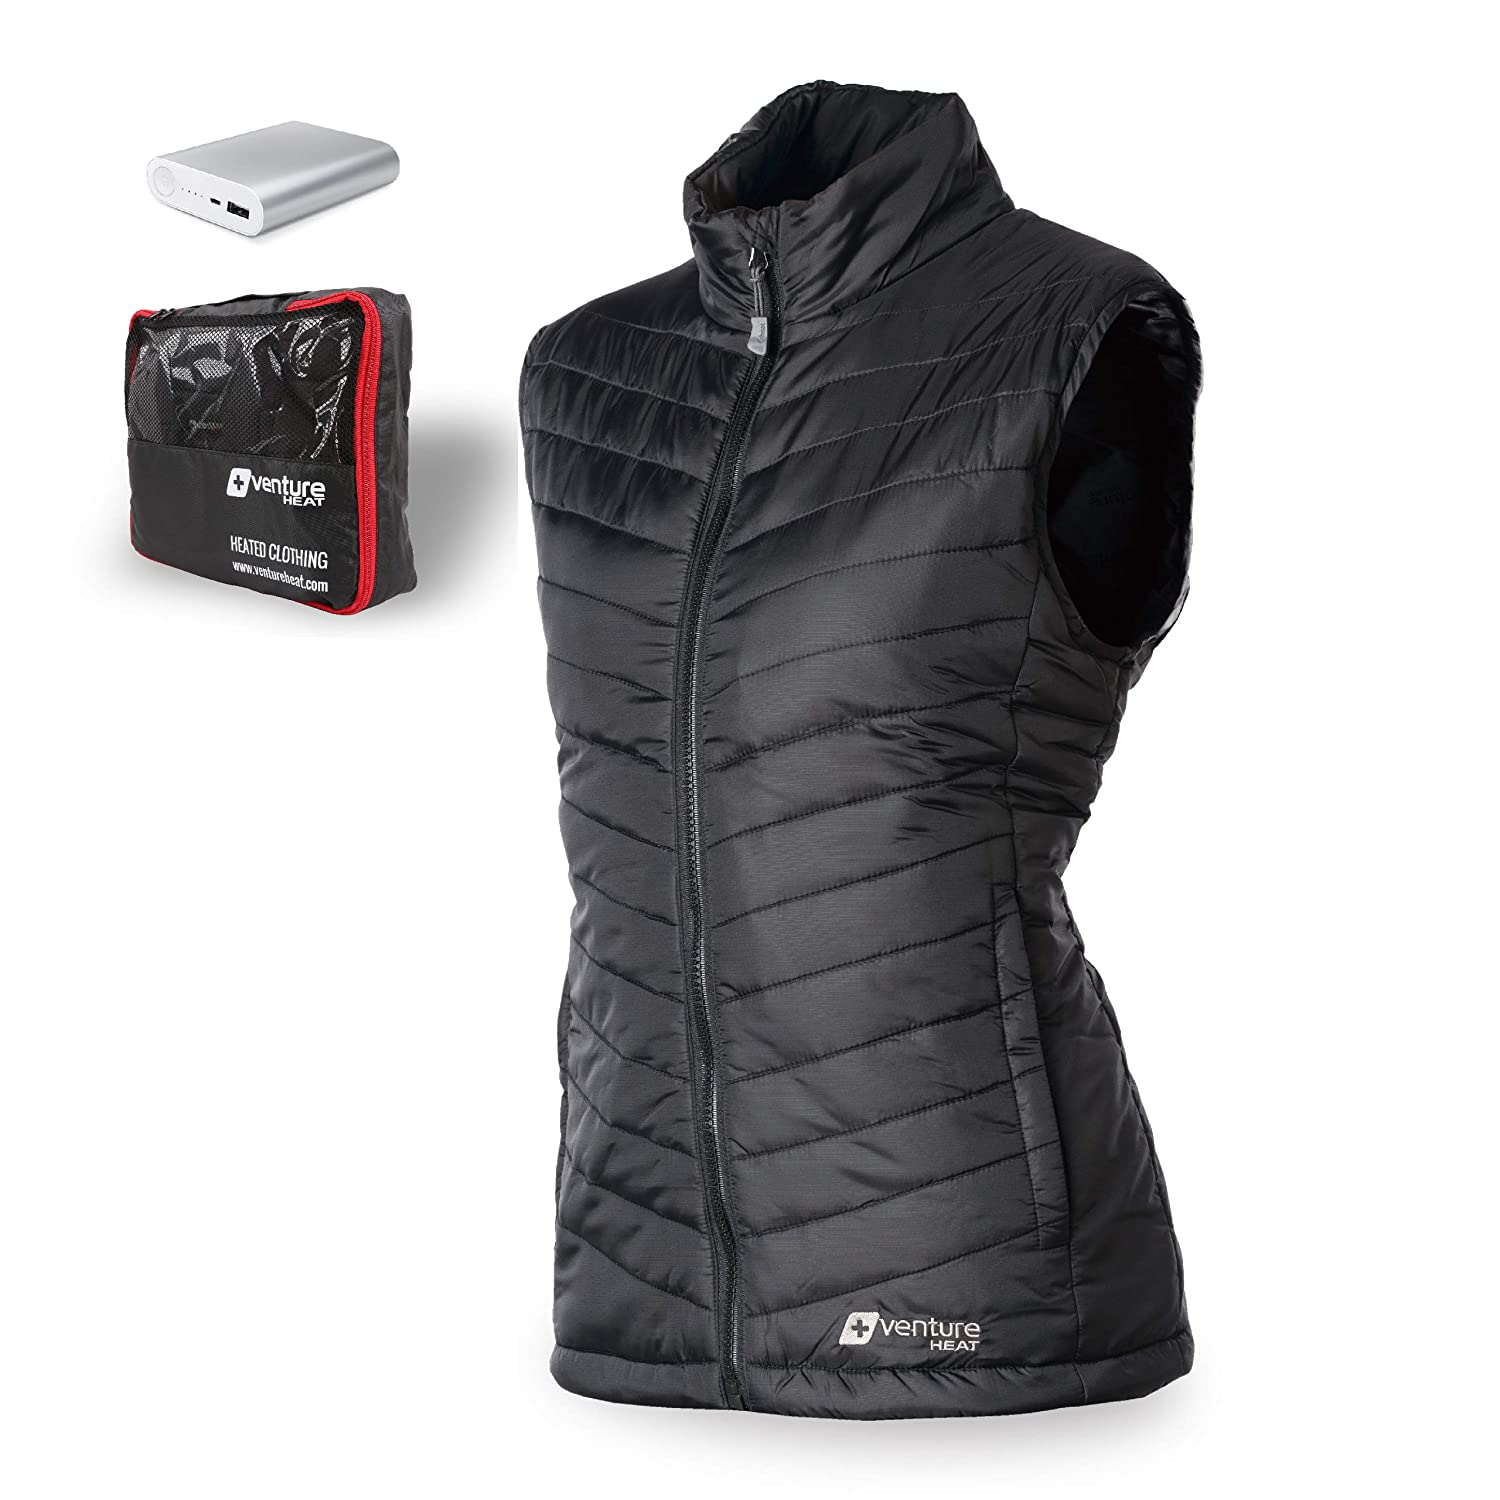 Black Large Venture Heat Women's Heated Vest with Battery 12Hr  The Roam Puffer Vest